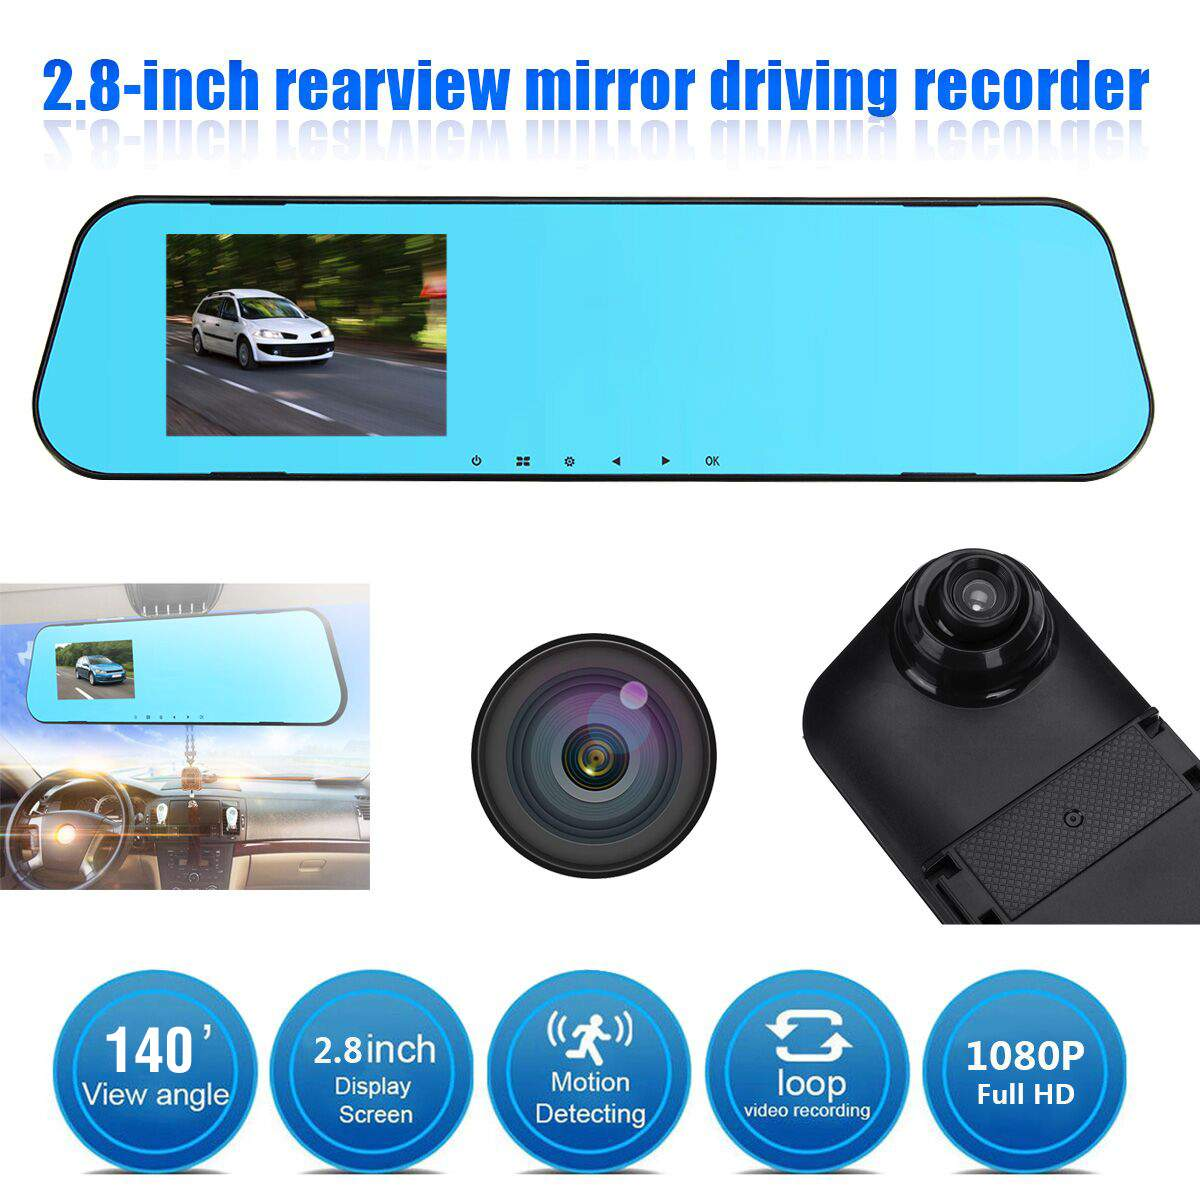 DVR Car-Dvr-Mirror Rearview-Dashcam Auto-Recorder Video Dual-Lens Full-Hd